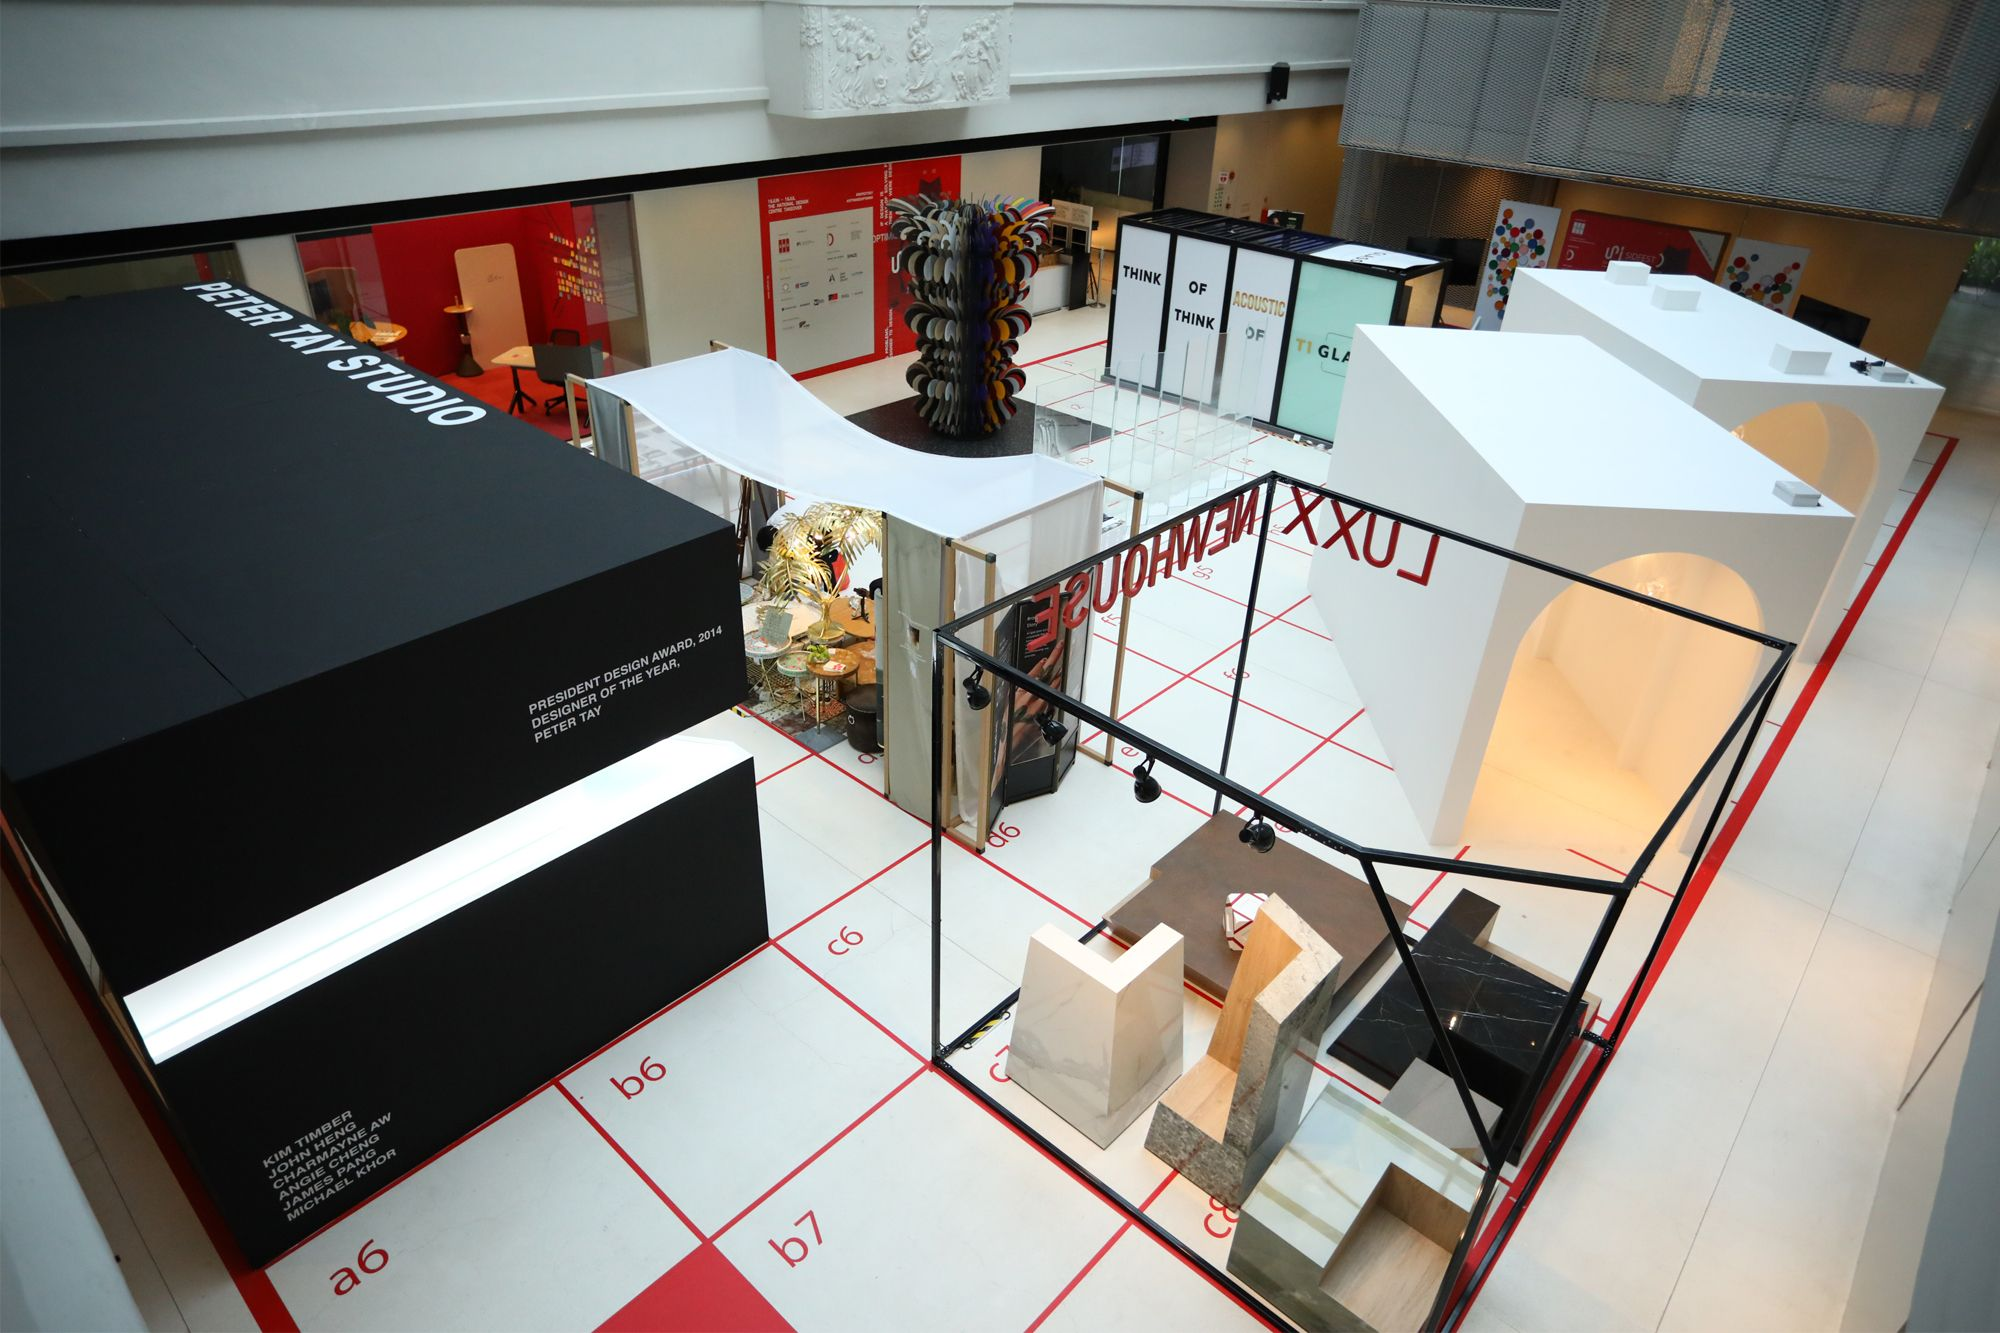 Design By Numbers is the flagship exhibition at this year's SIDFest Photo: Courtesy of SIDFest